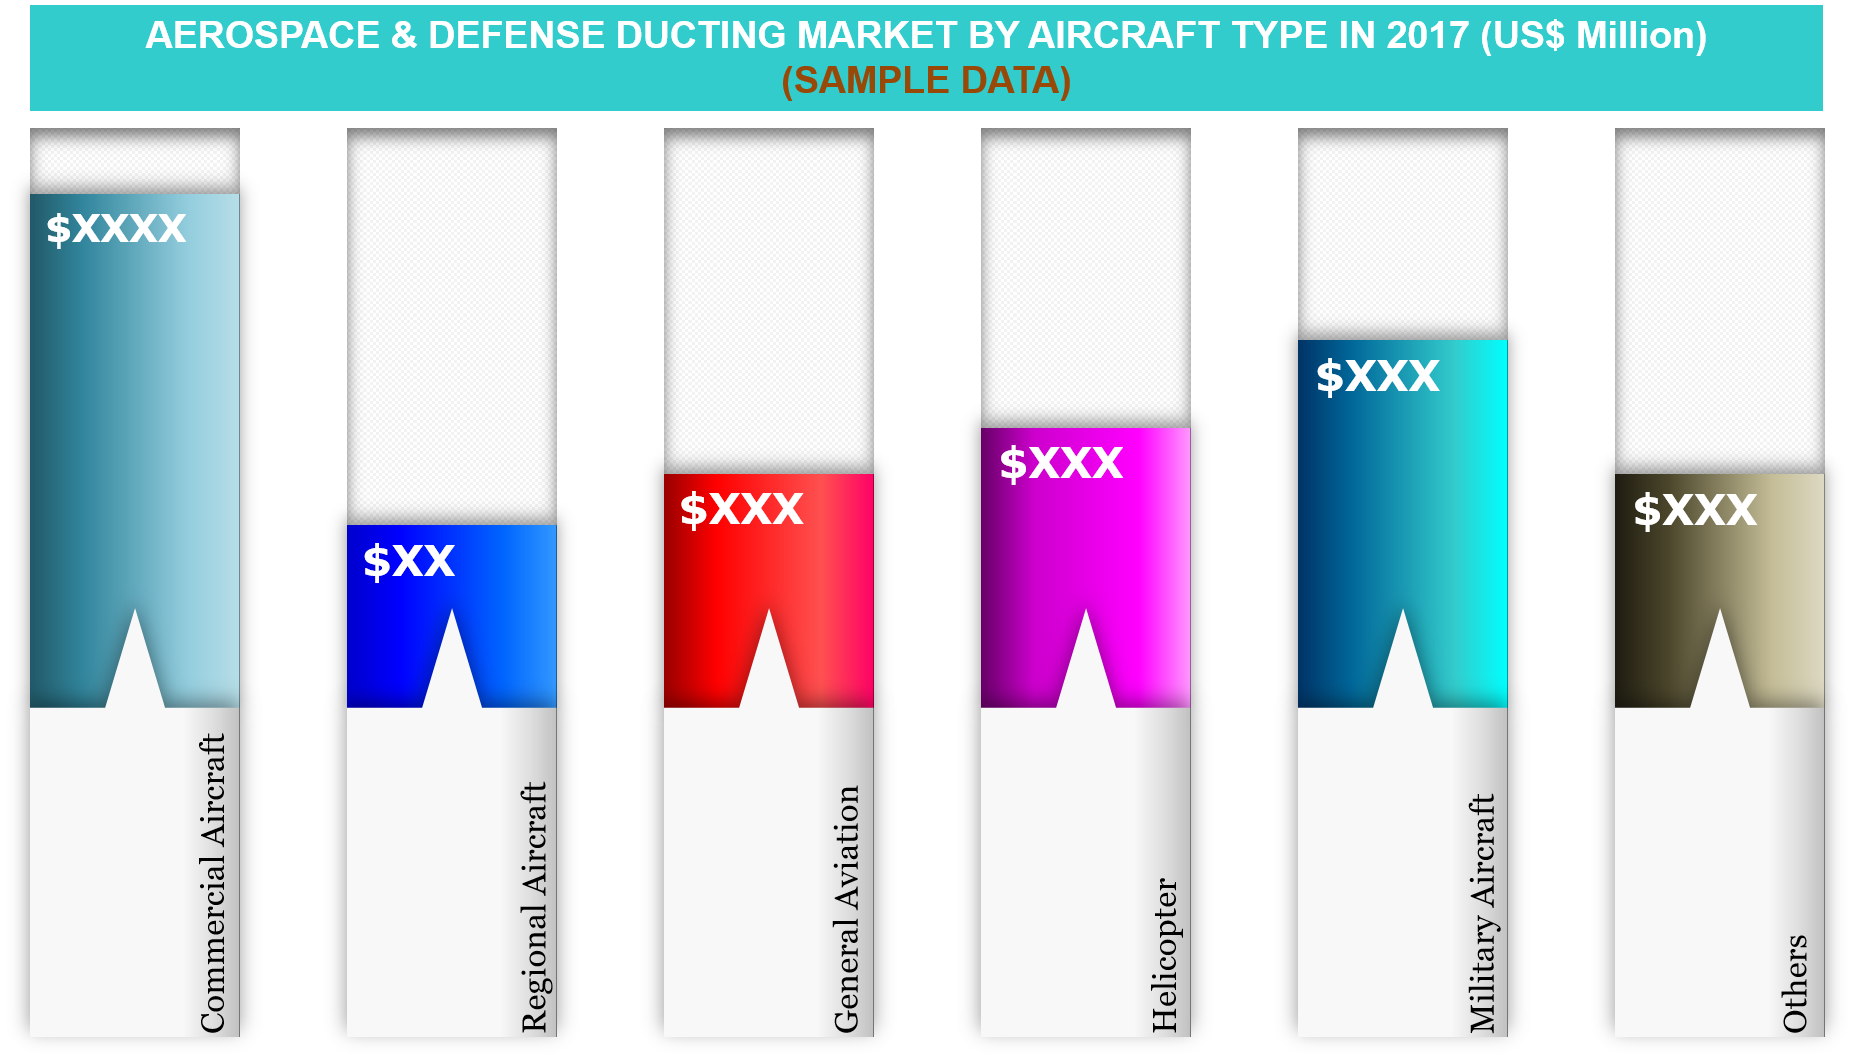 A&D Ducting Market by Aircraft Type